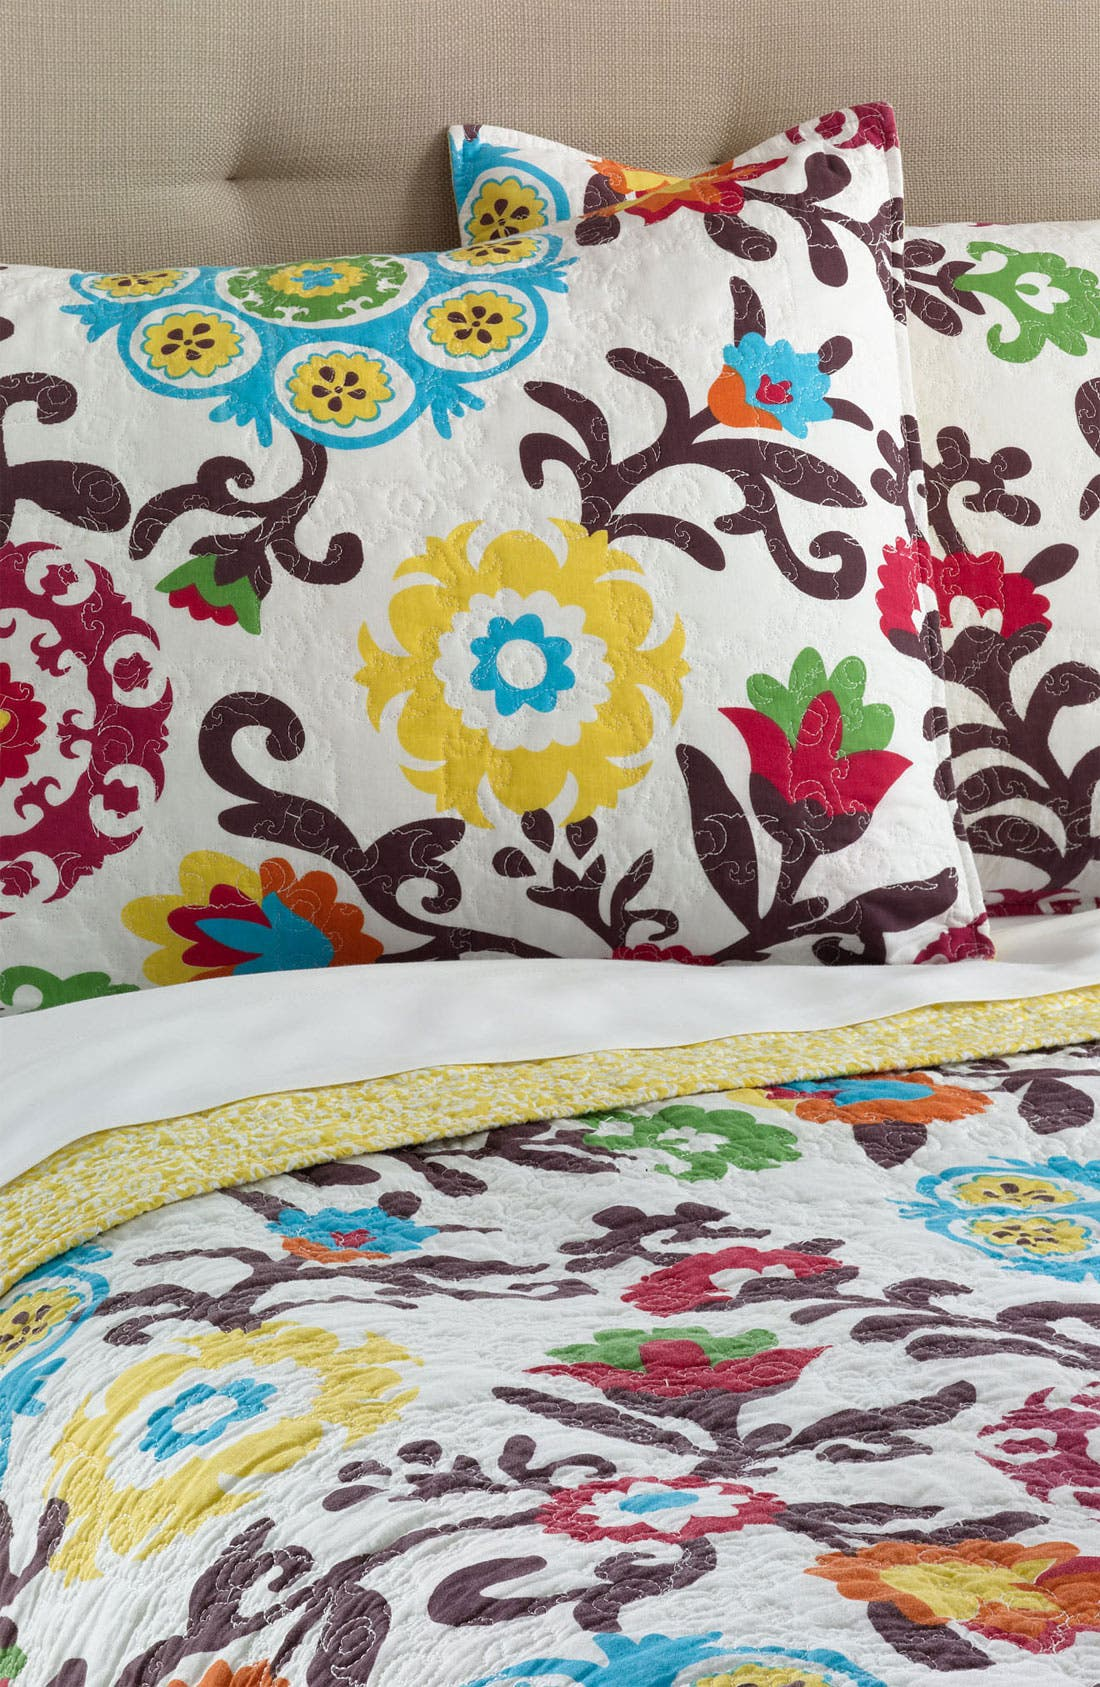 Alternate Image 1 Selected - Levtex 'Corazon' Quilted Pillow Sham